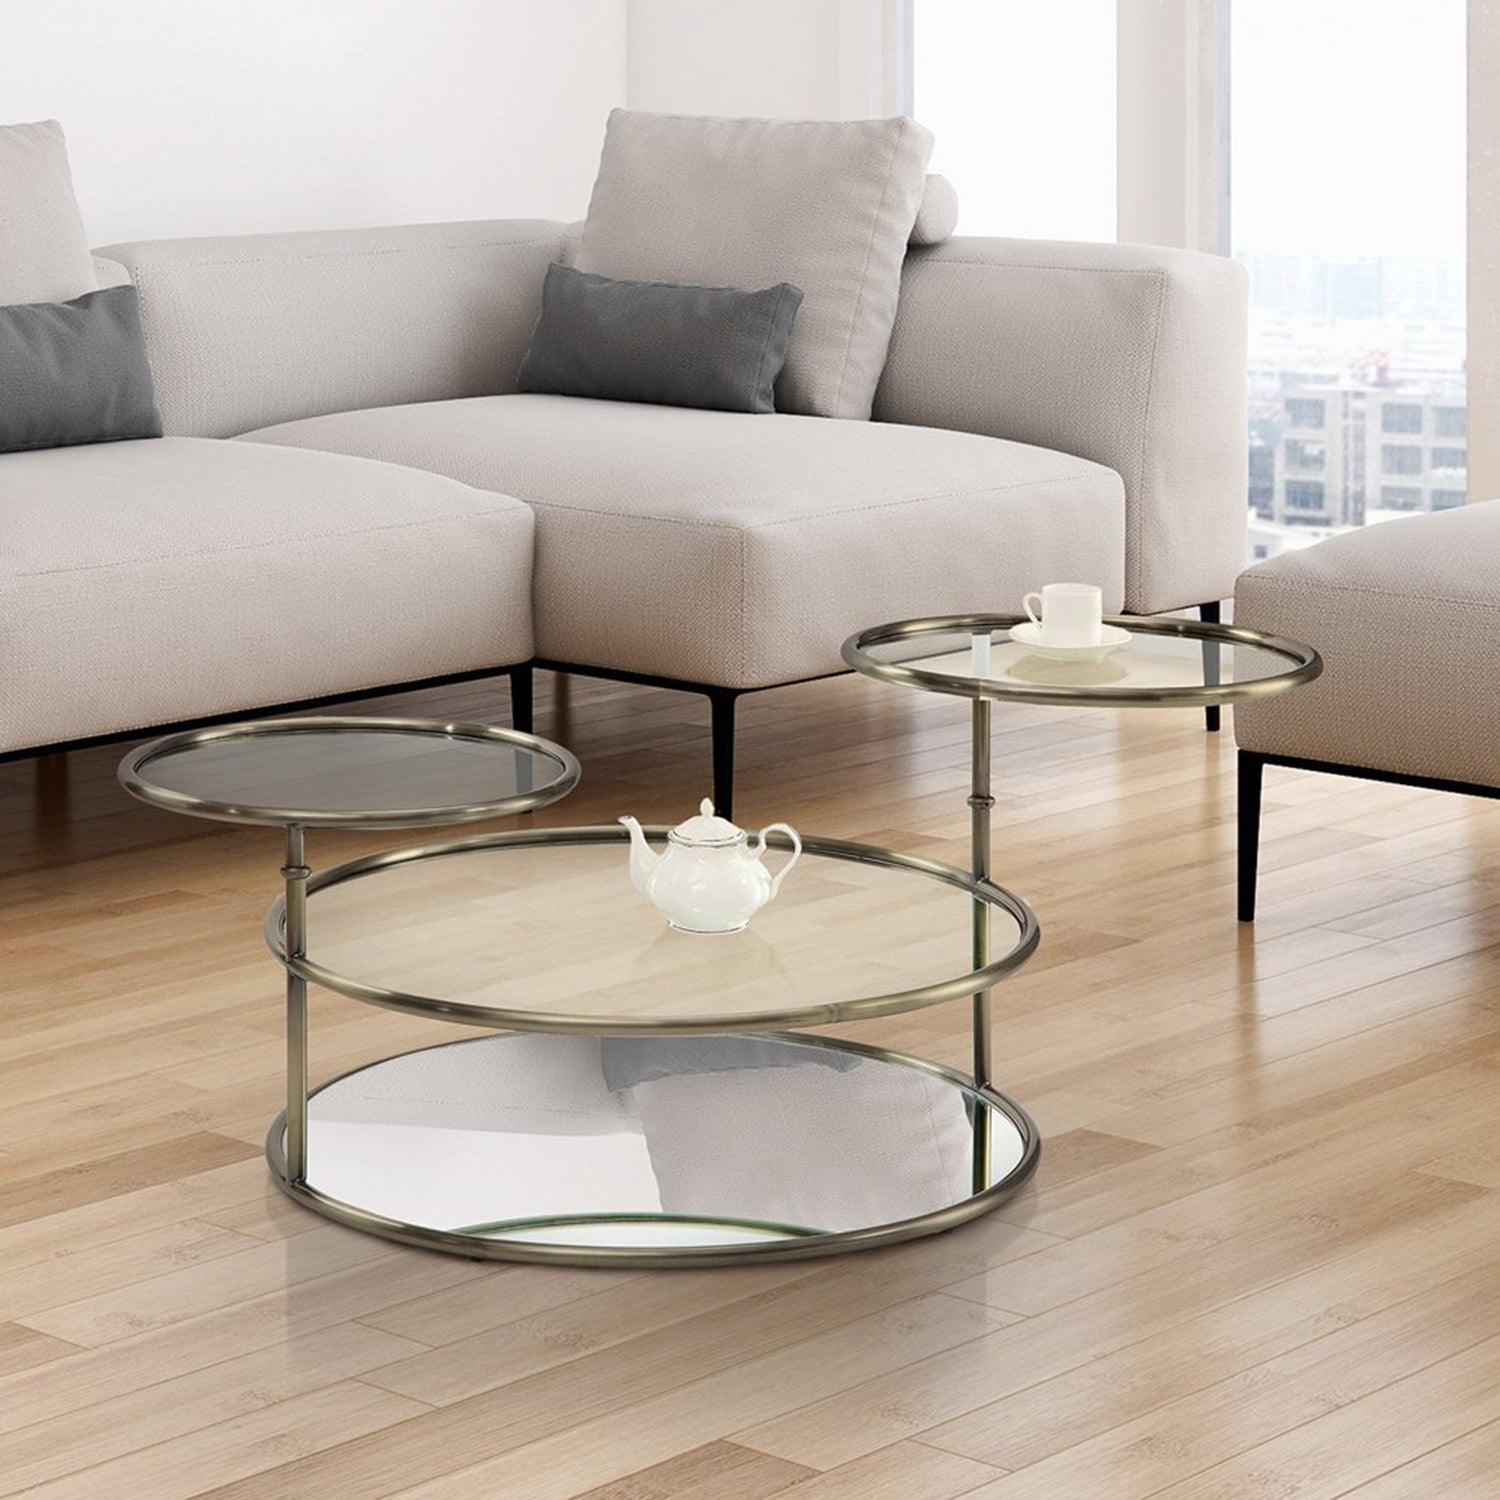 Picture of: Furniture Of America Hora Modern Gold Glass Round Swivel Coffee Table Overstock 13370434